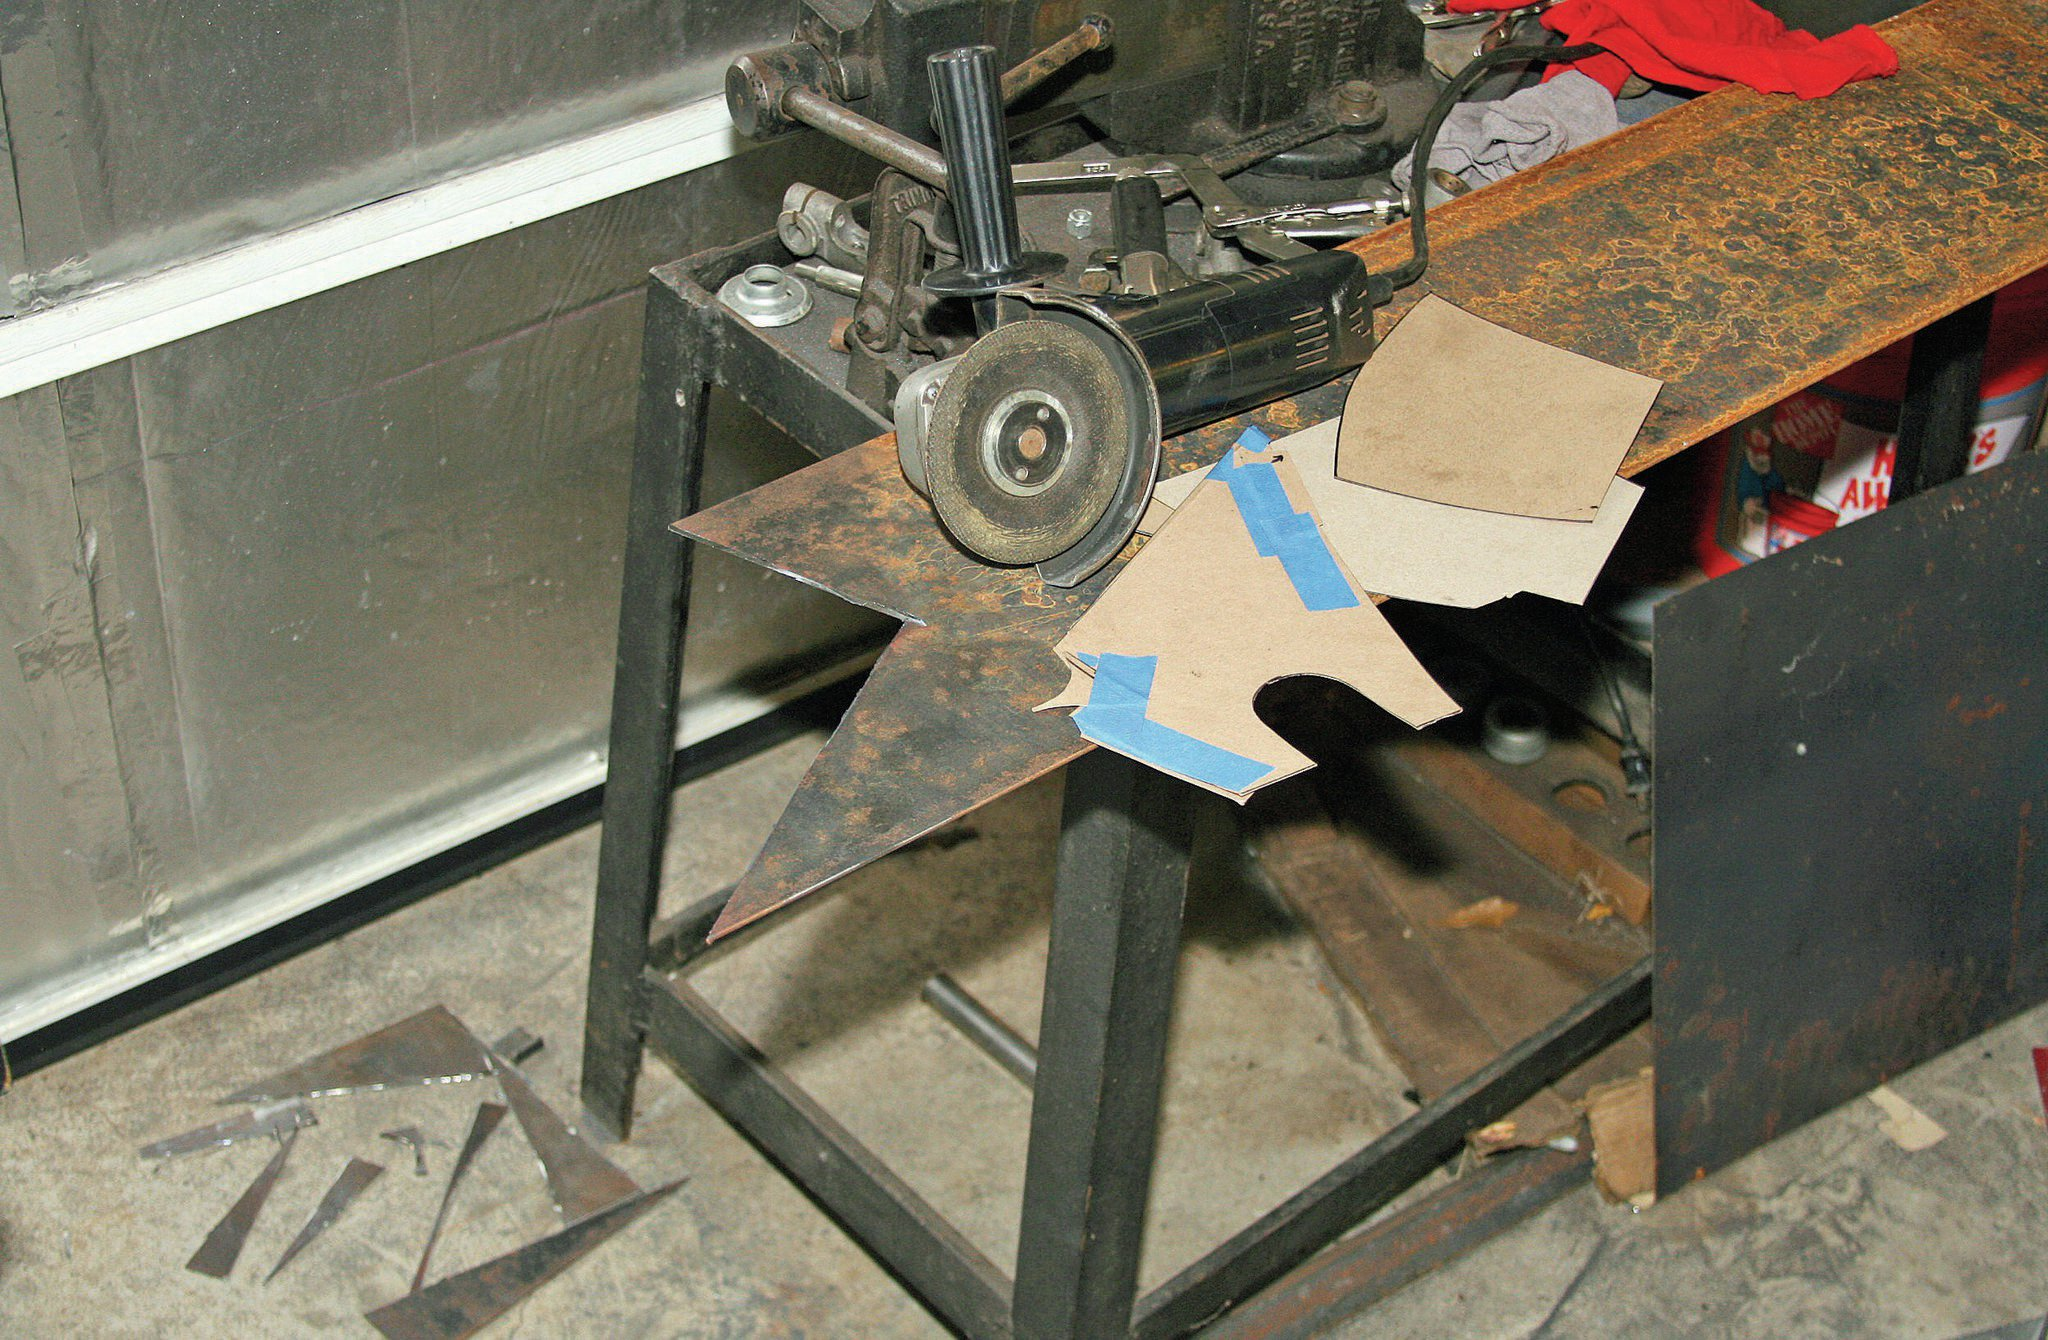 We used 1⁄8-inch plate, cut with a cut-off wheel on our angle grinder, to form the box that would hold the steering box. The 1⁄8-inch plate is plenty sturdy, but we wouldn't want to go any thinner.